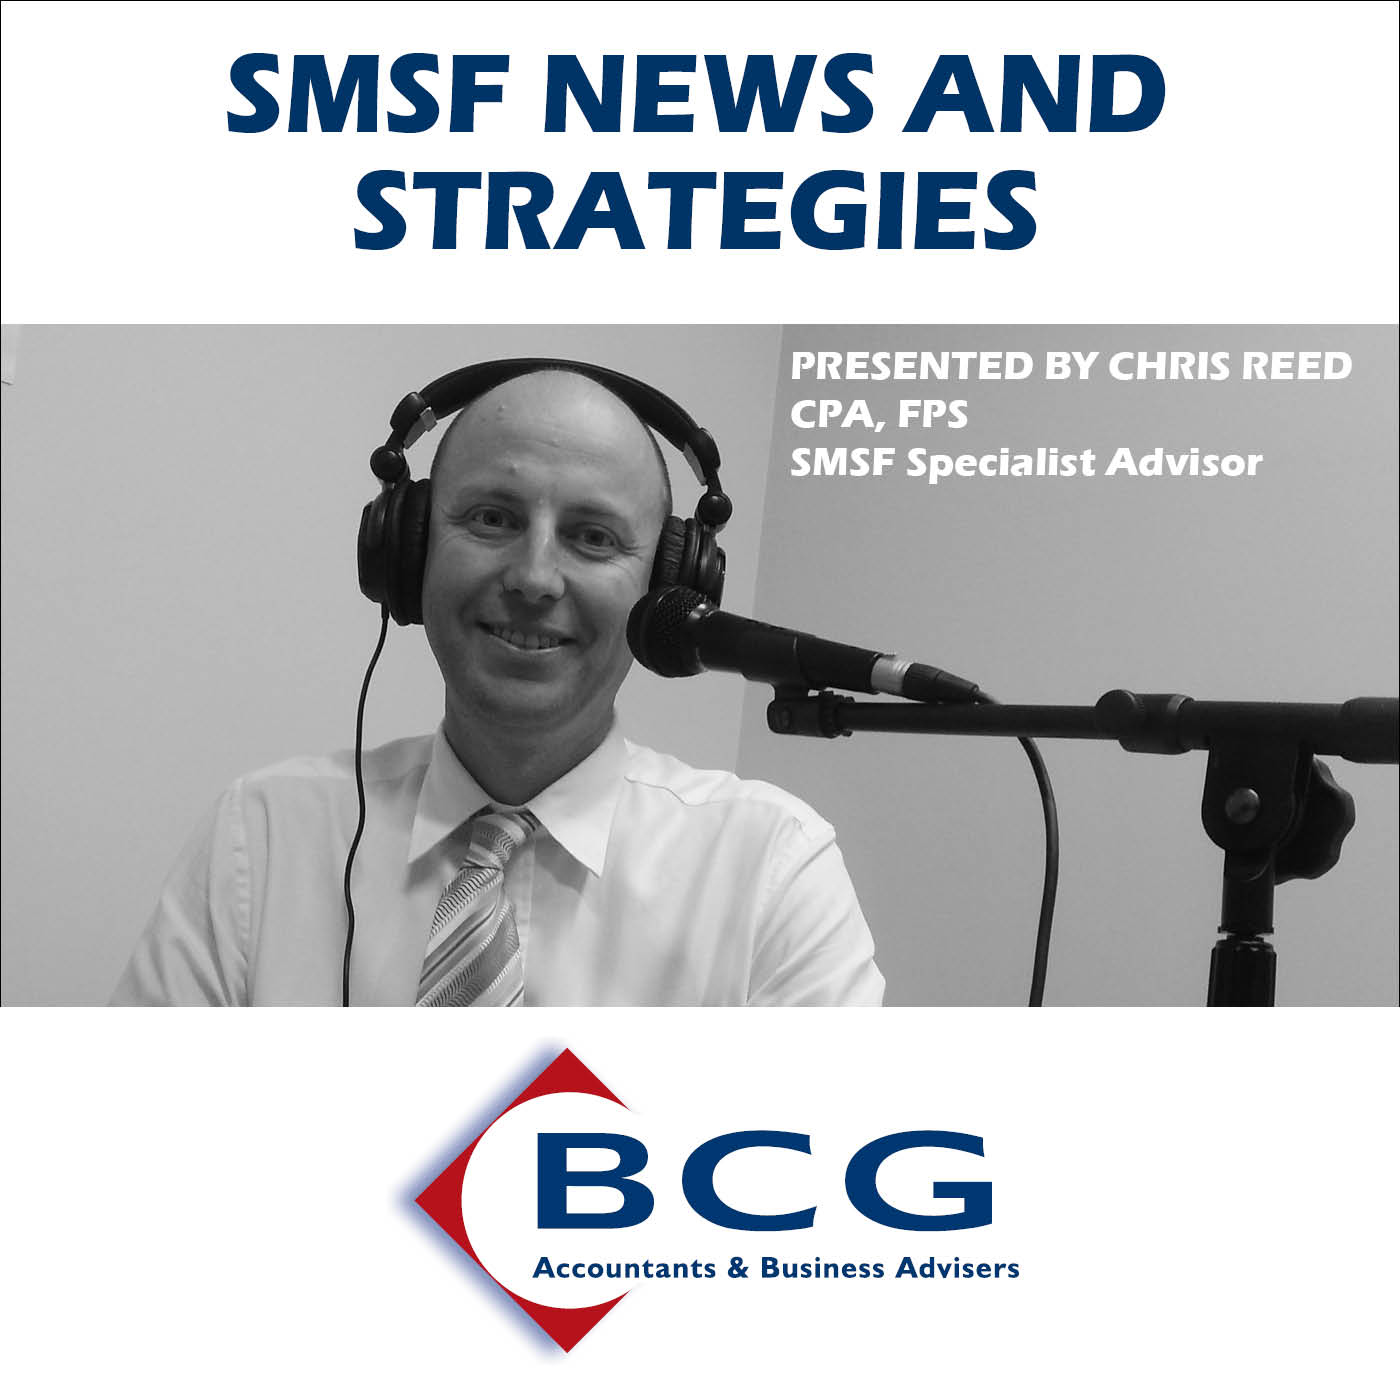 SMSF NS041: The Latest Update on the Superannuation Changes Announced by the Government